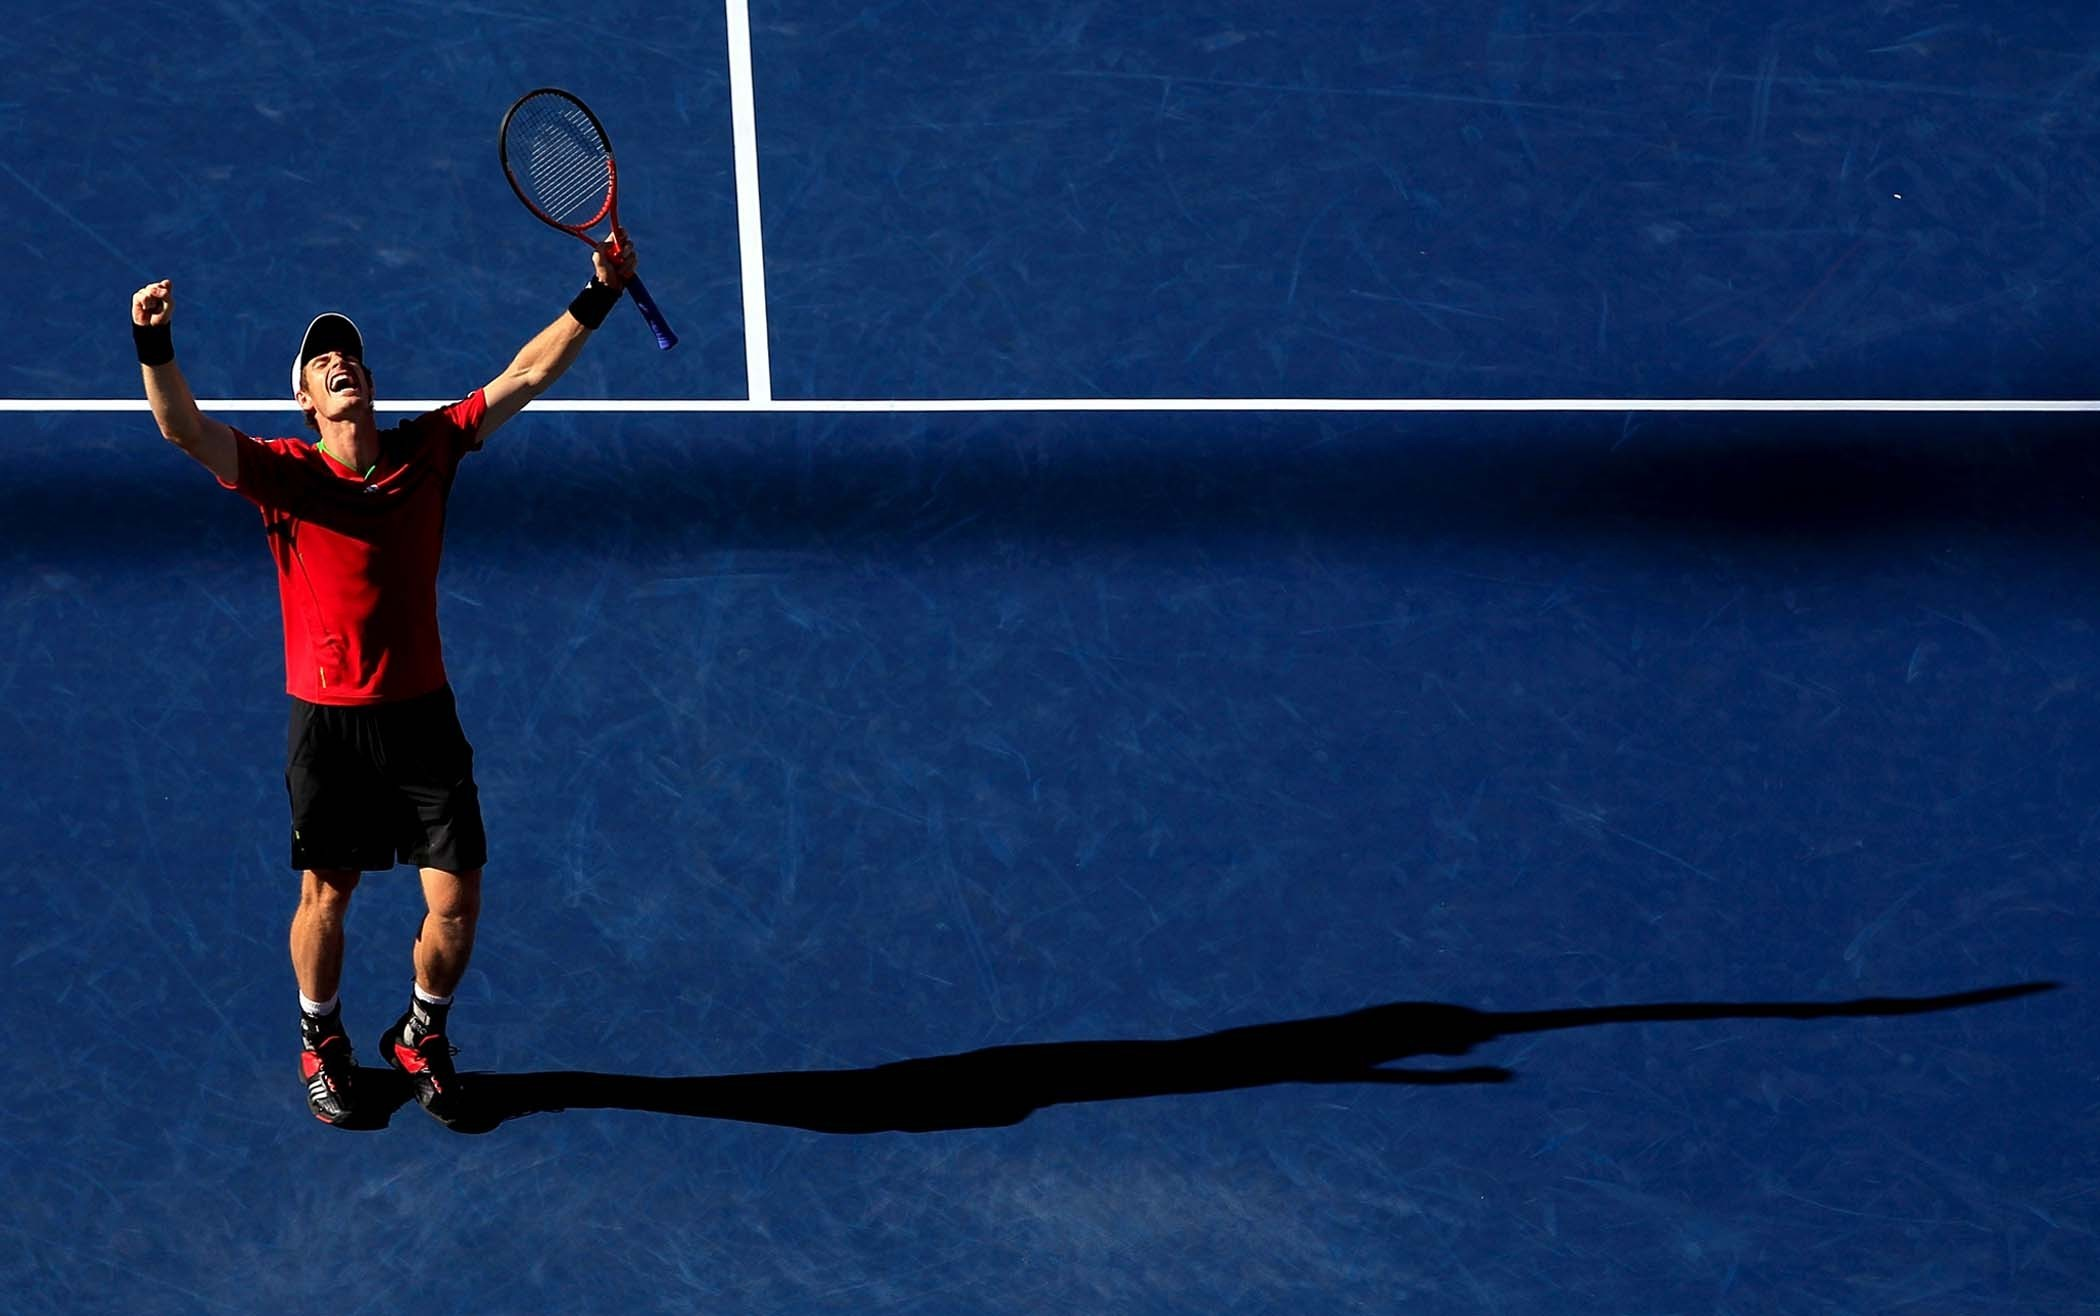 titillating tennis player can't believe the size of his racket  85412